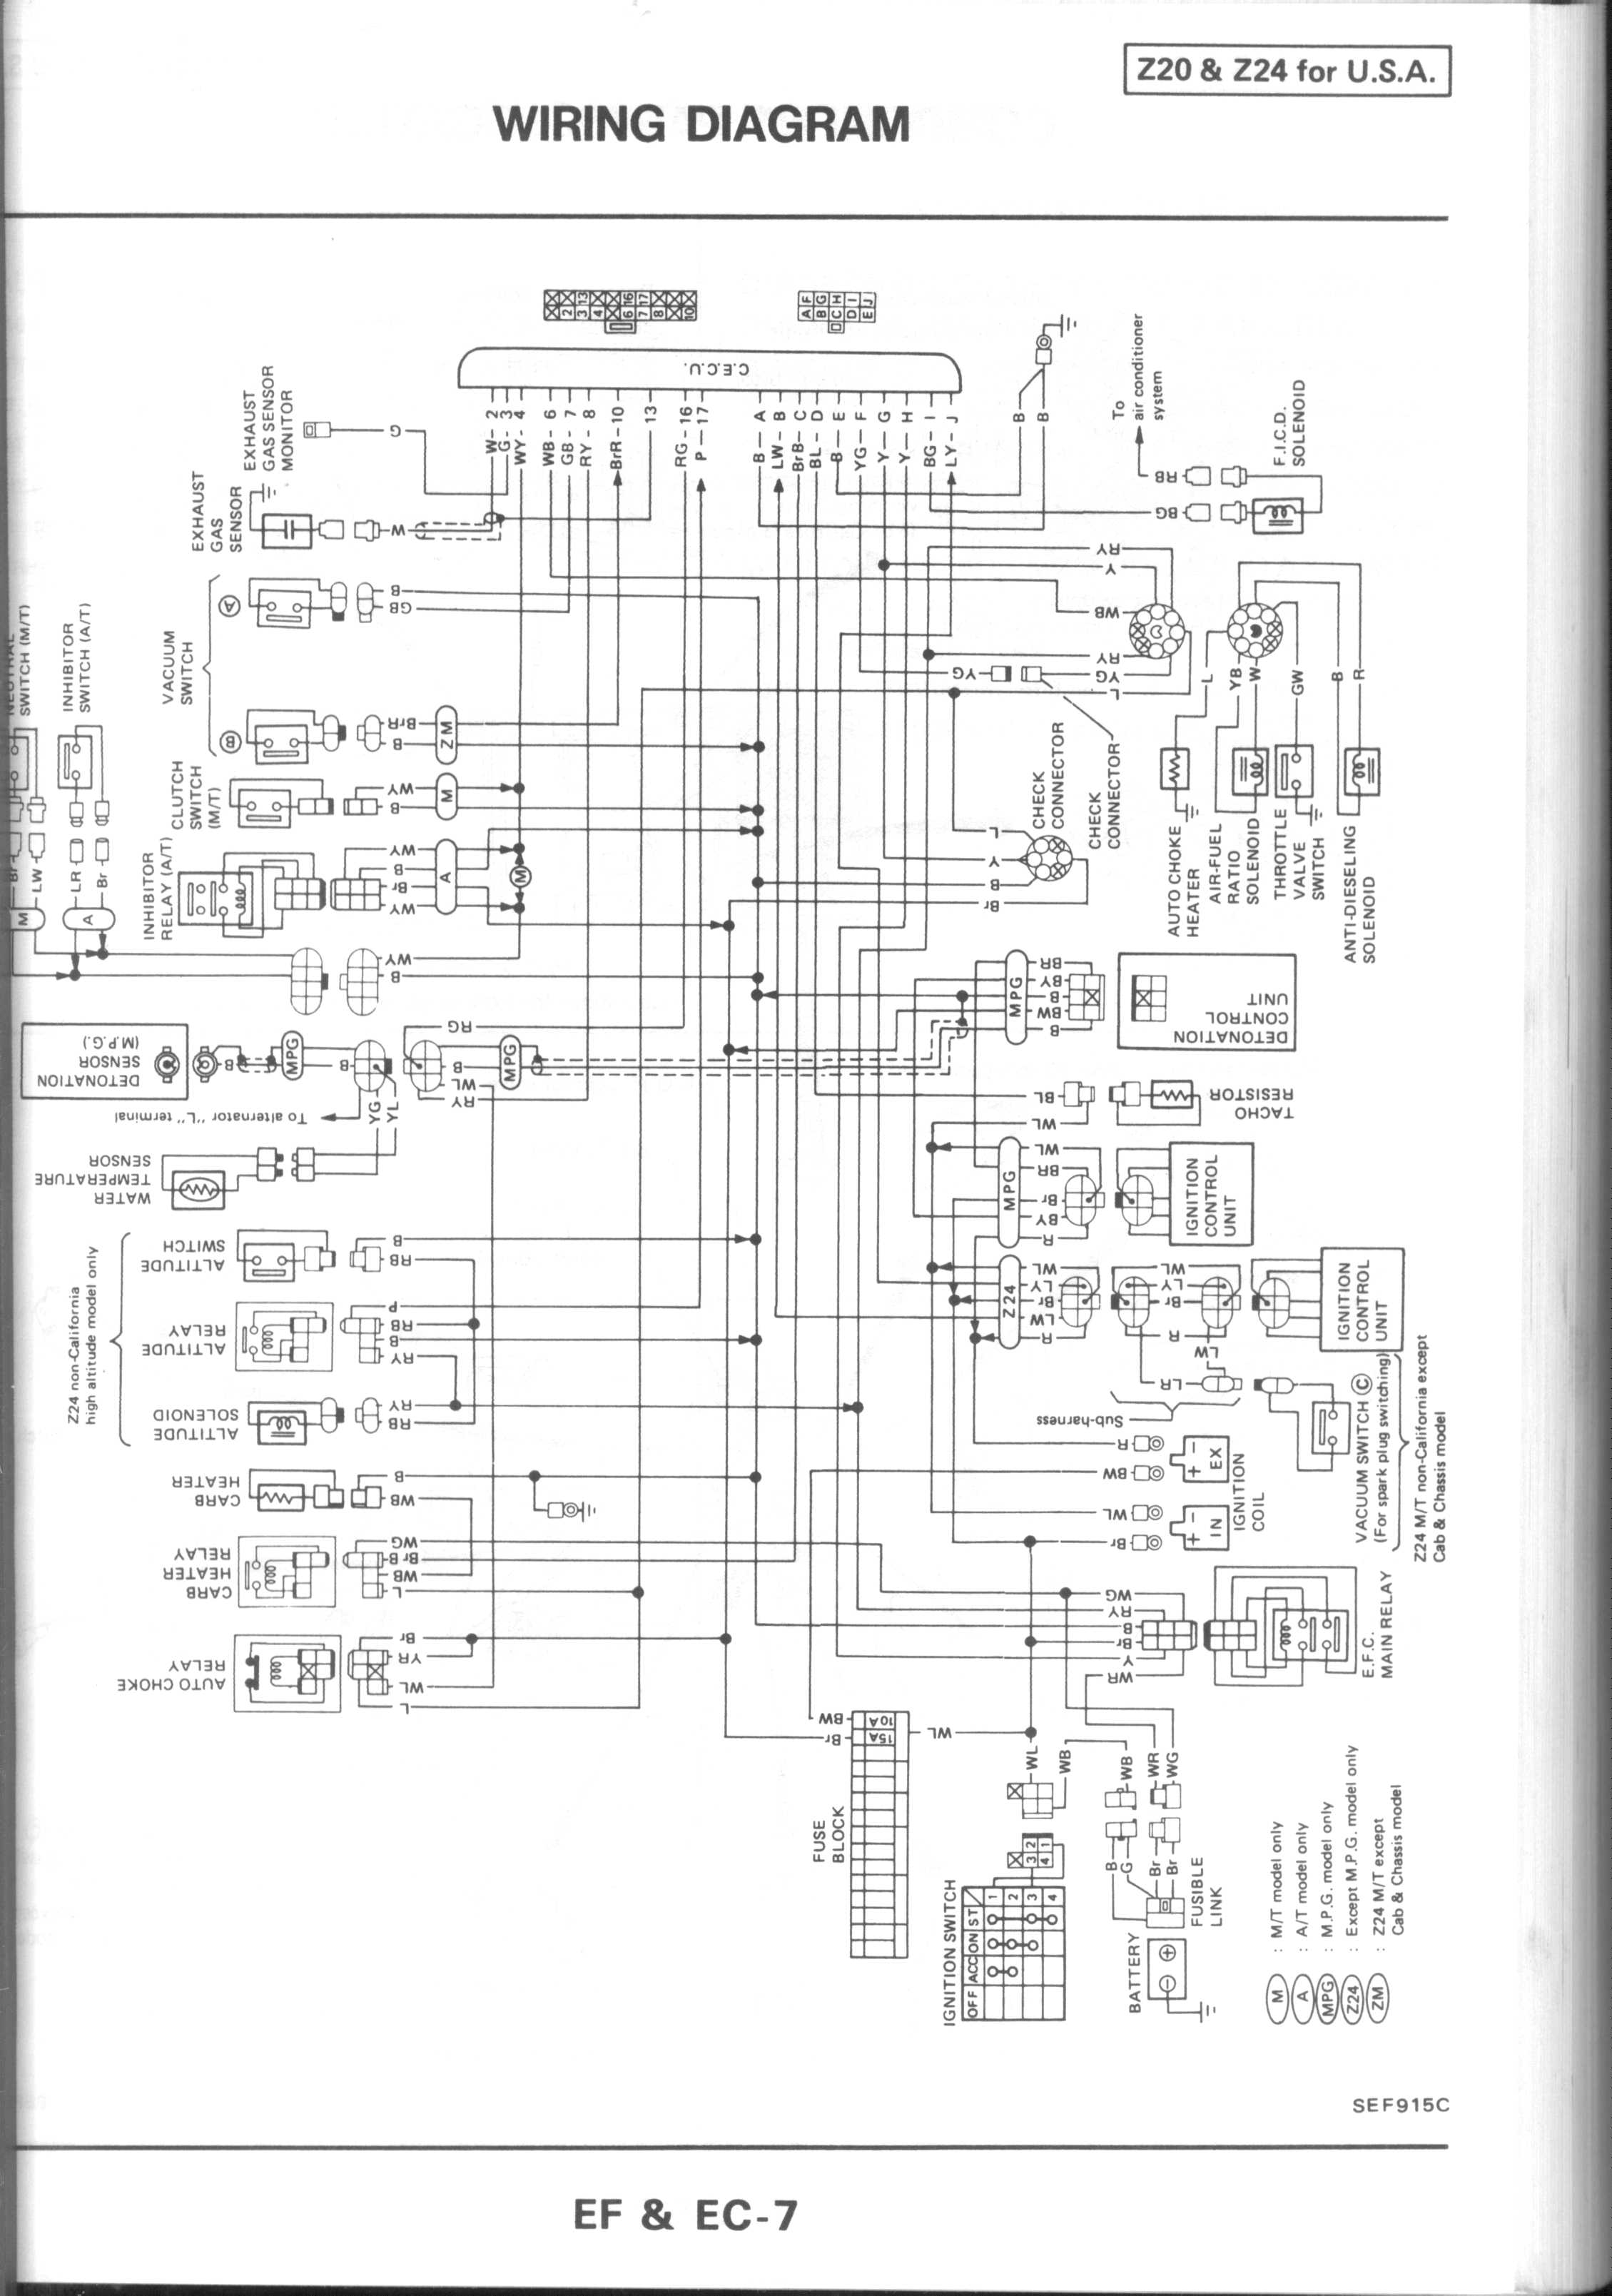 720_z24_ecu_wiring?resize=665%2C947 diagrams 578680 nissan frontier radio wiring diagram 2015 wiring diagram for nissan navara d40 at bakdesigns.co